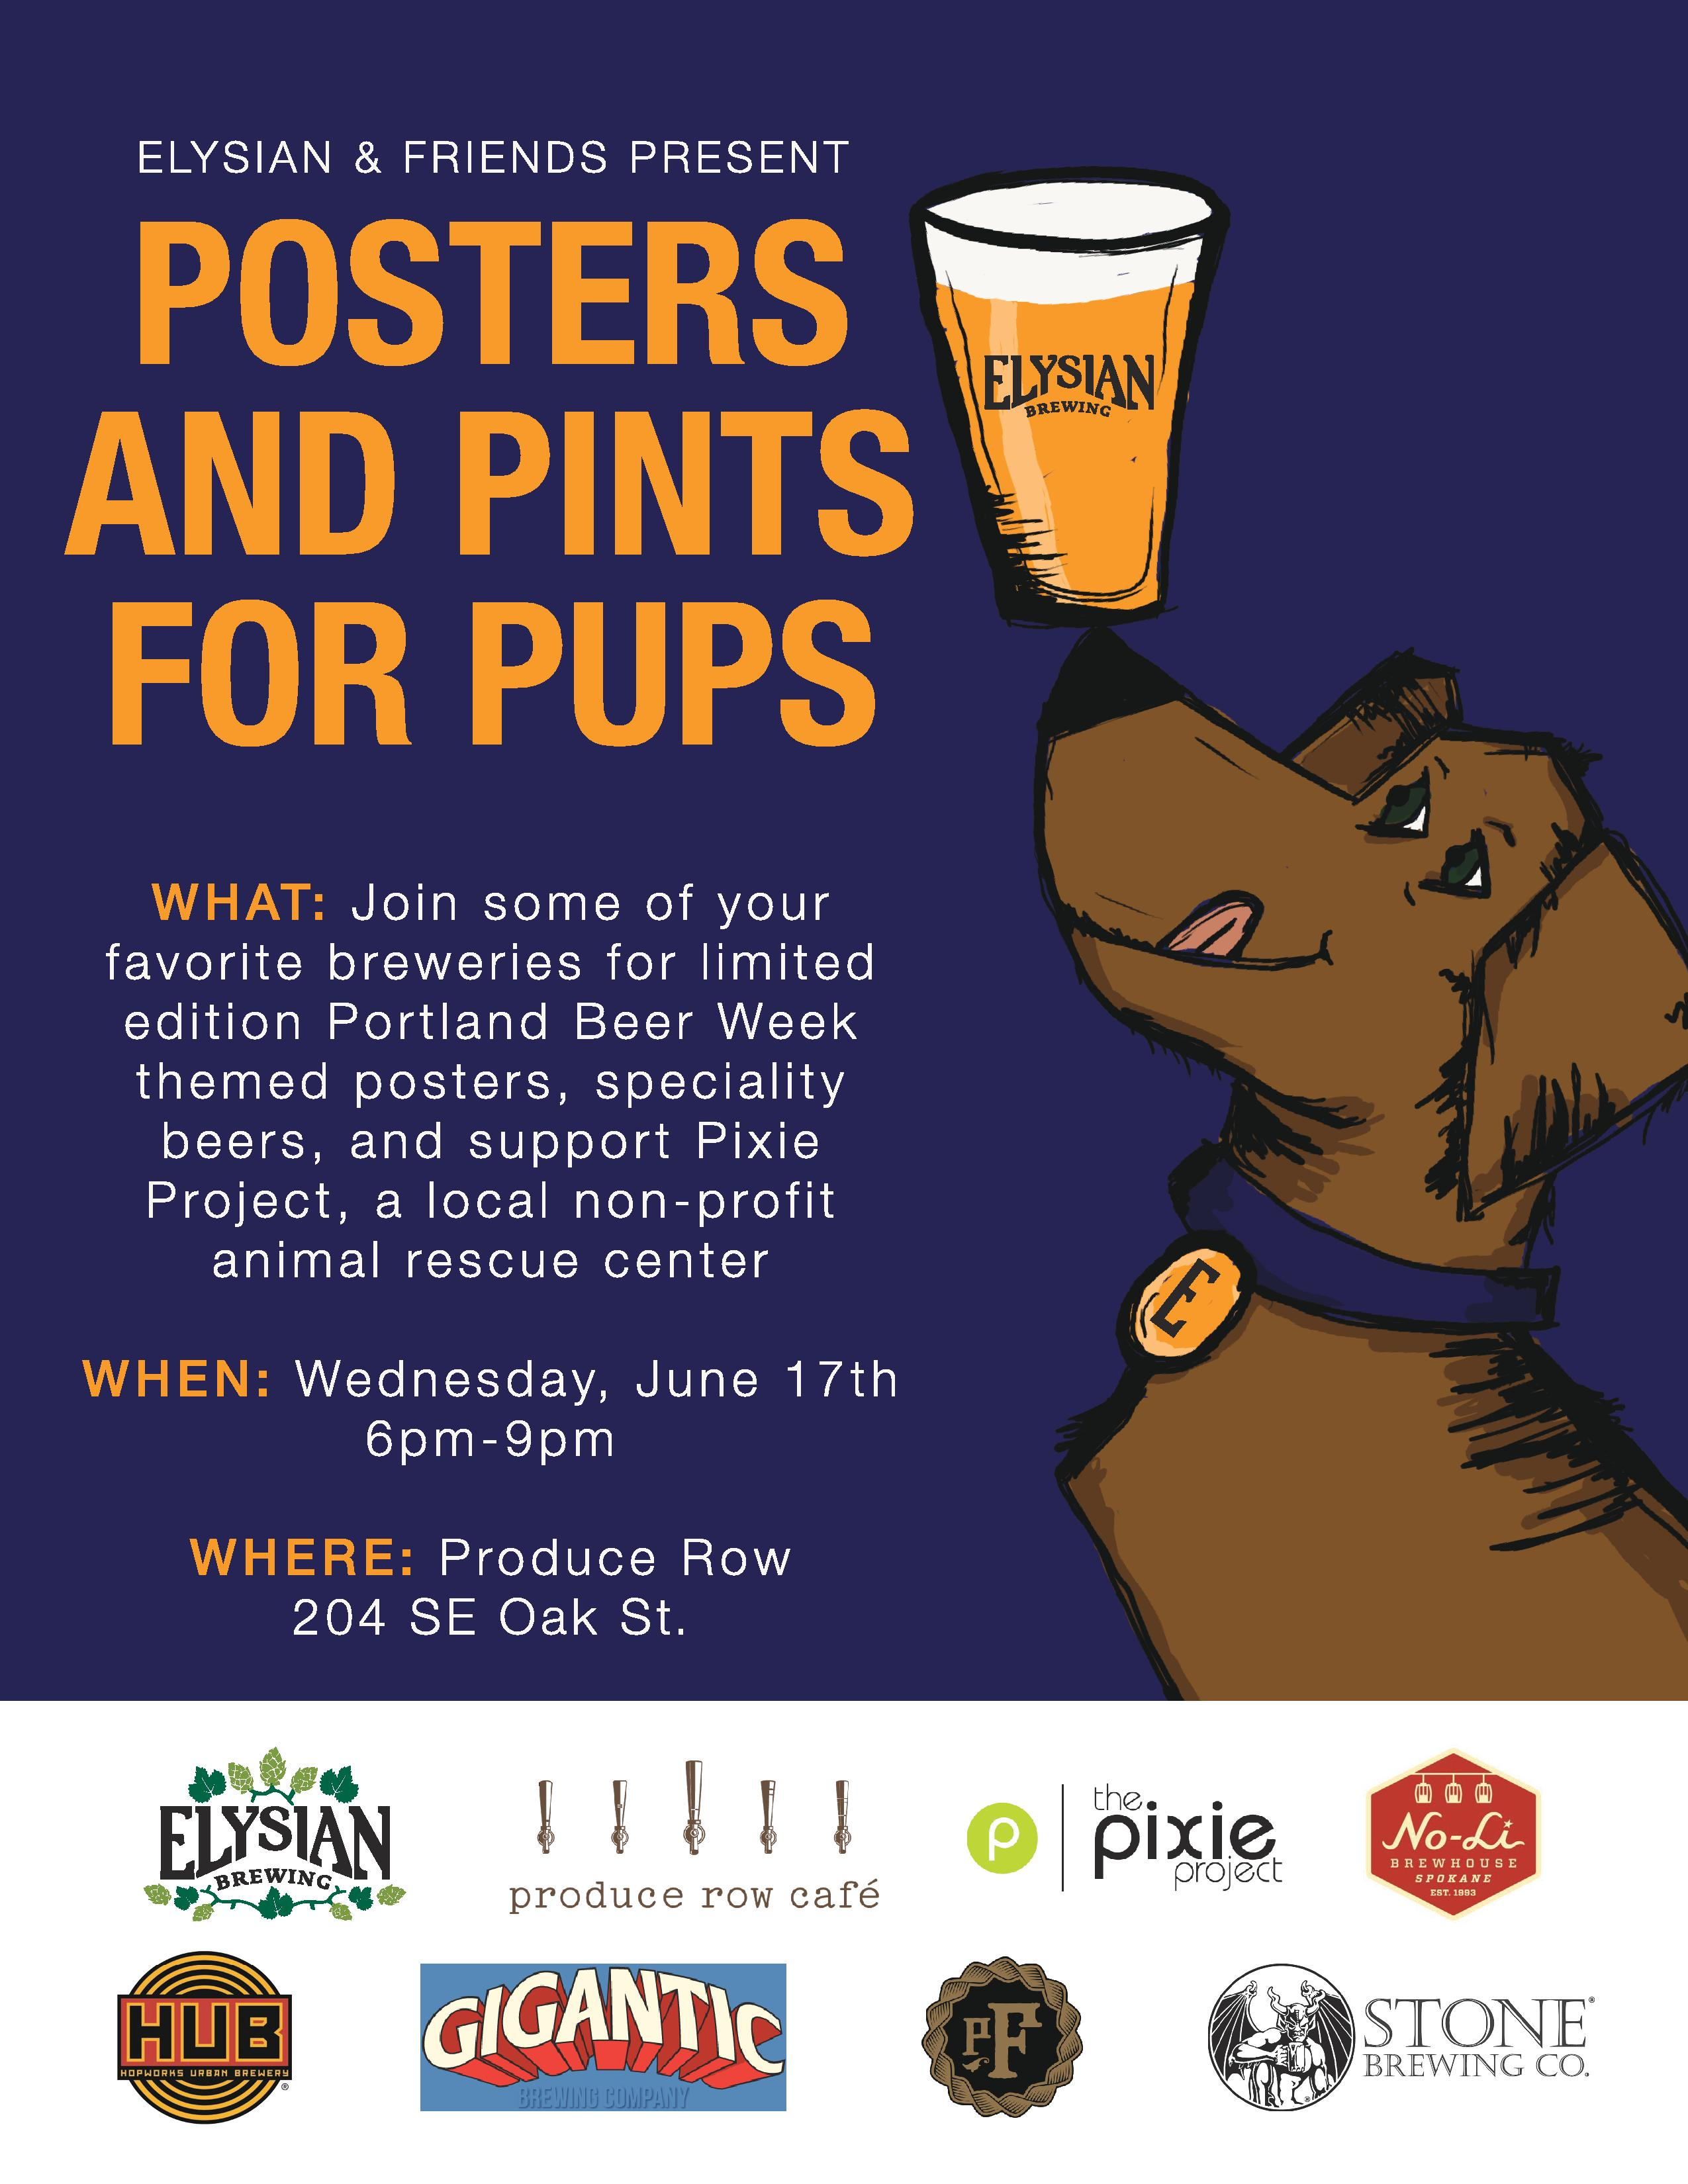 Posters and Pints for Pups at Produce Row